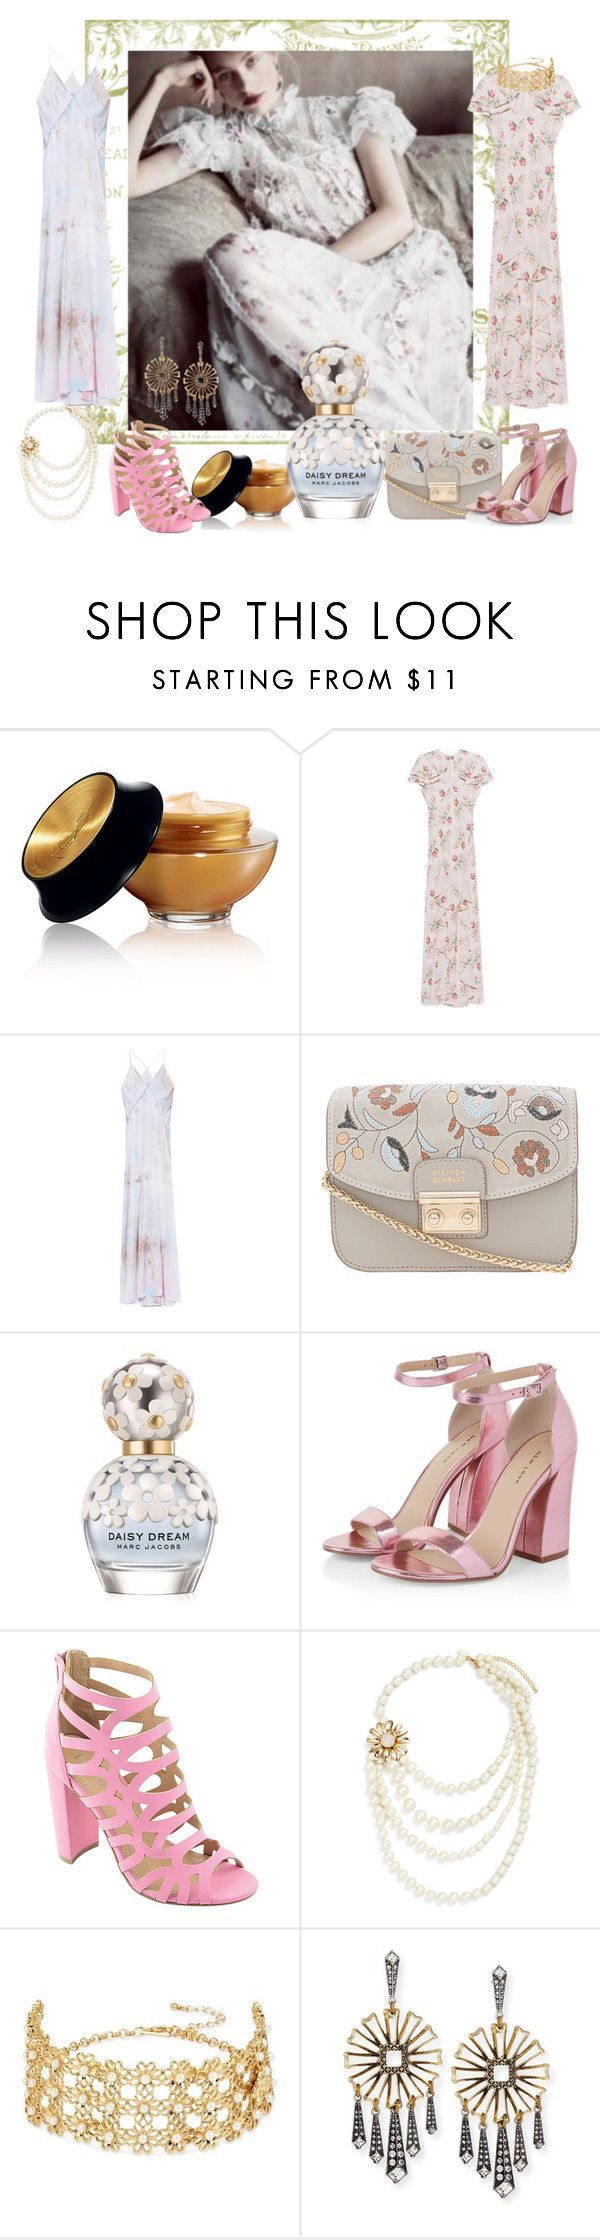 """""""daisy"""" by snowmoon ❤ liked on Polyvore featuring Yves Saint Laurent, Vilshenko, Galvan, Steffen Schraut, Marc Jacobs, Bella Marie, INC International Concepts and Lulu Frost"""